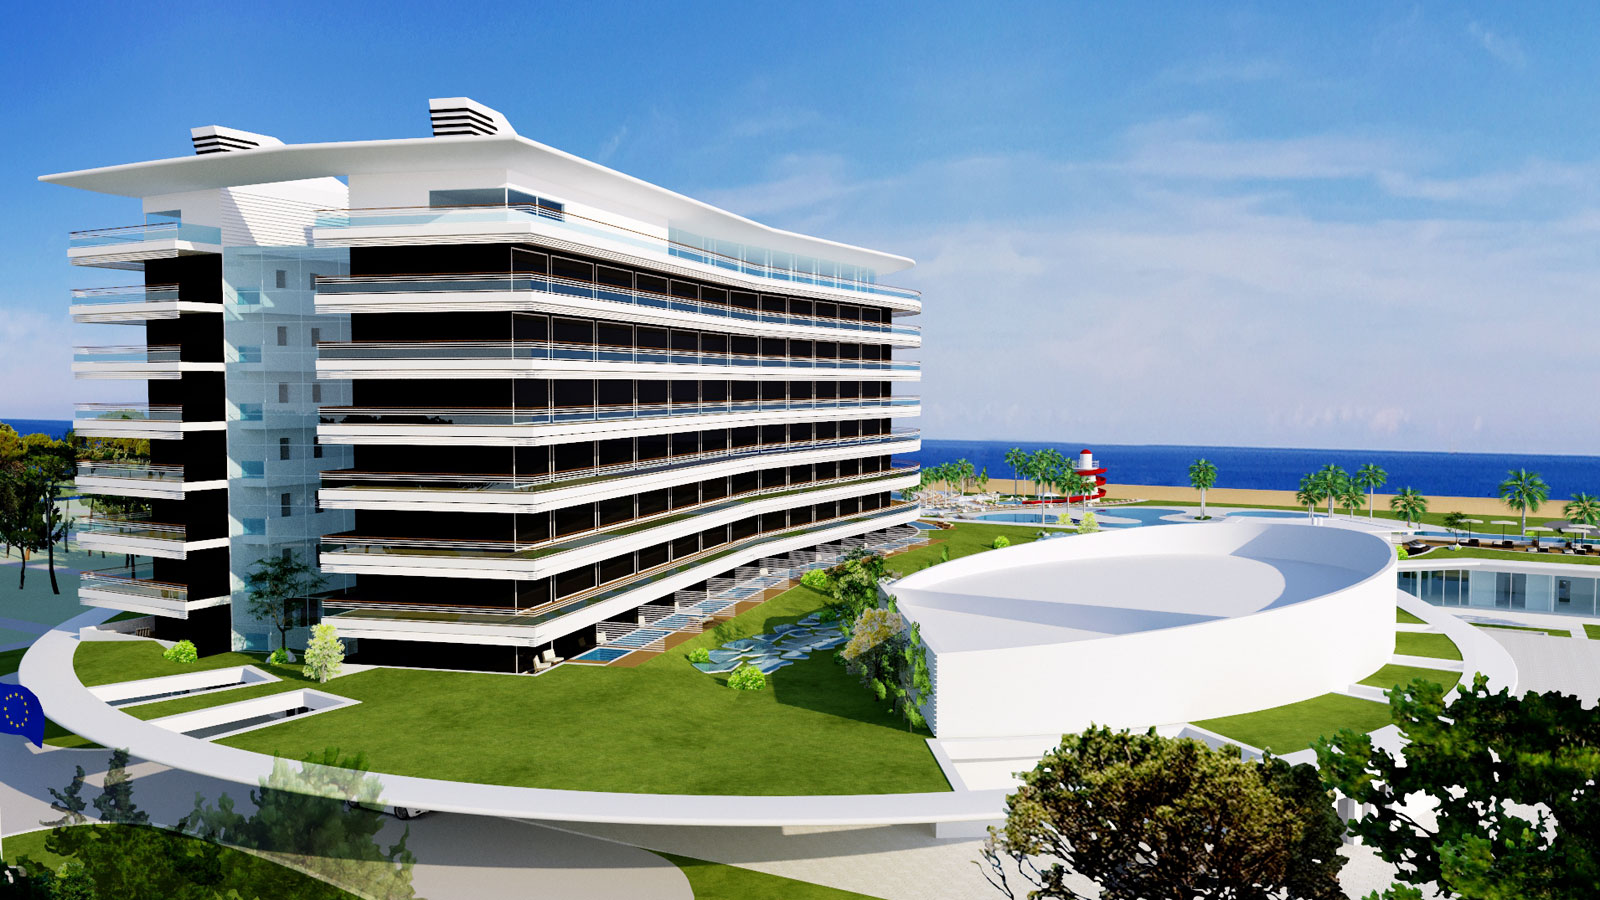 wellness hotel on the Adriatic coast - concept design